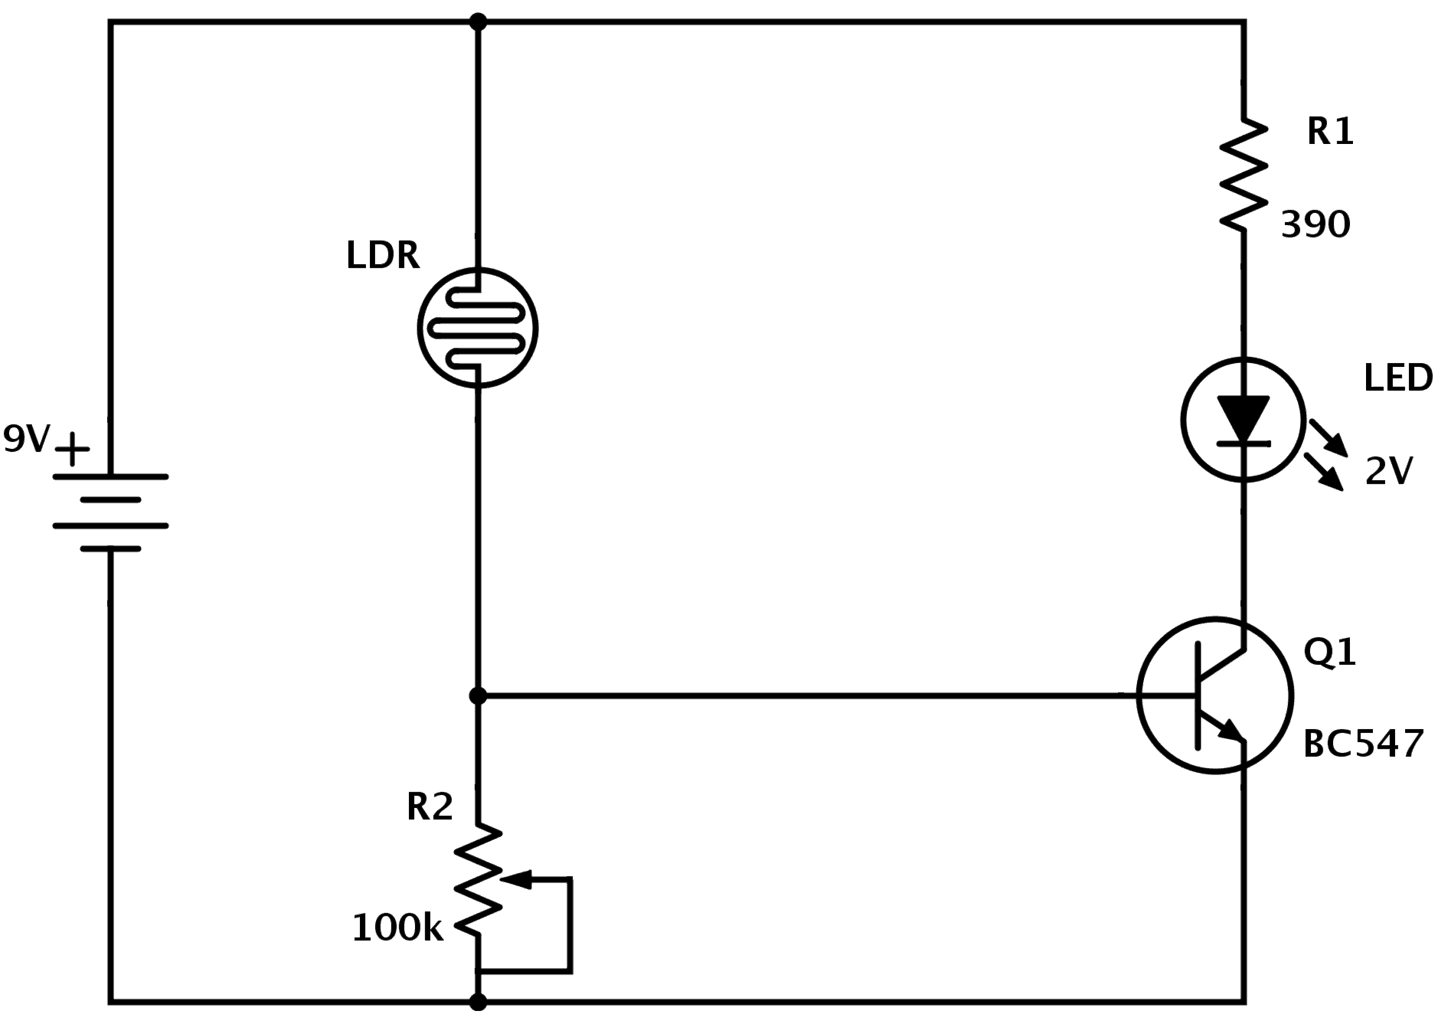 LDR circuit improved circuit diagram how to read and understand any schematic reading wiring schematics at n-0.co